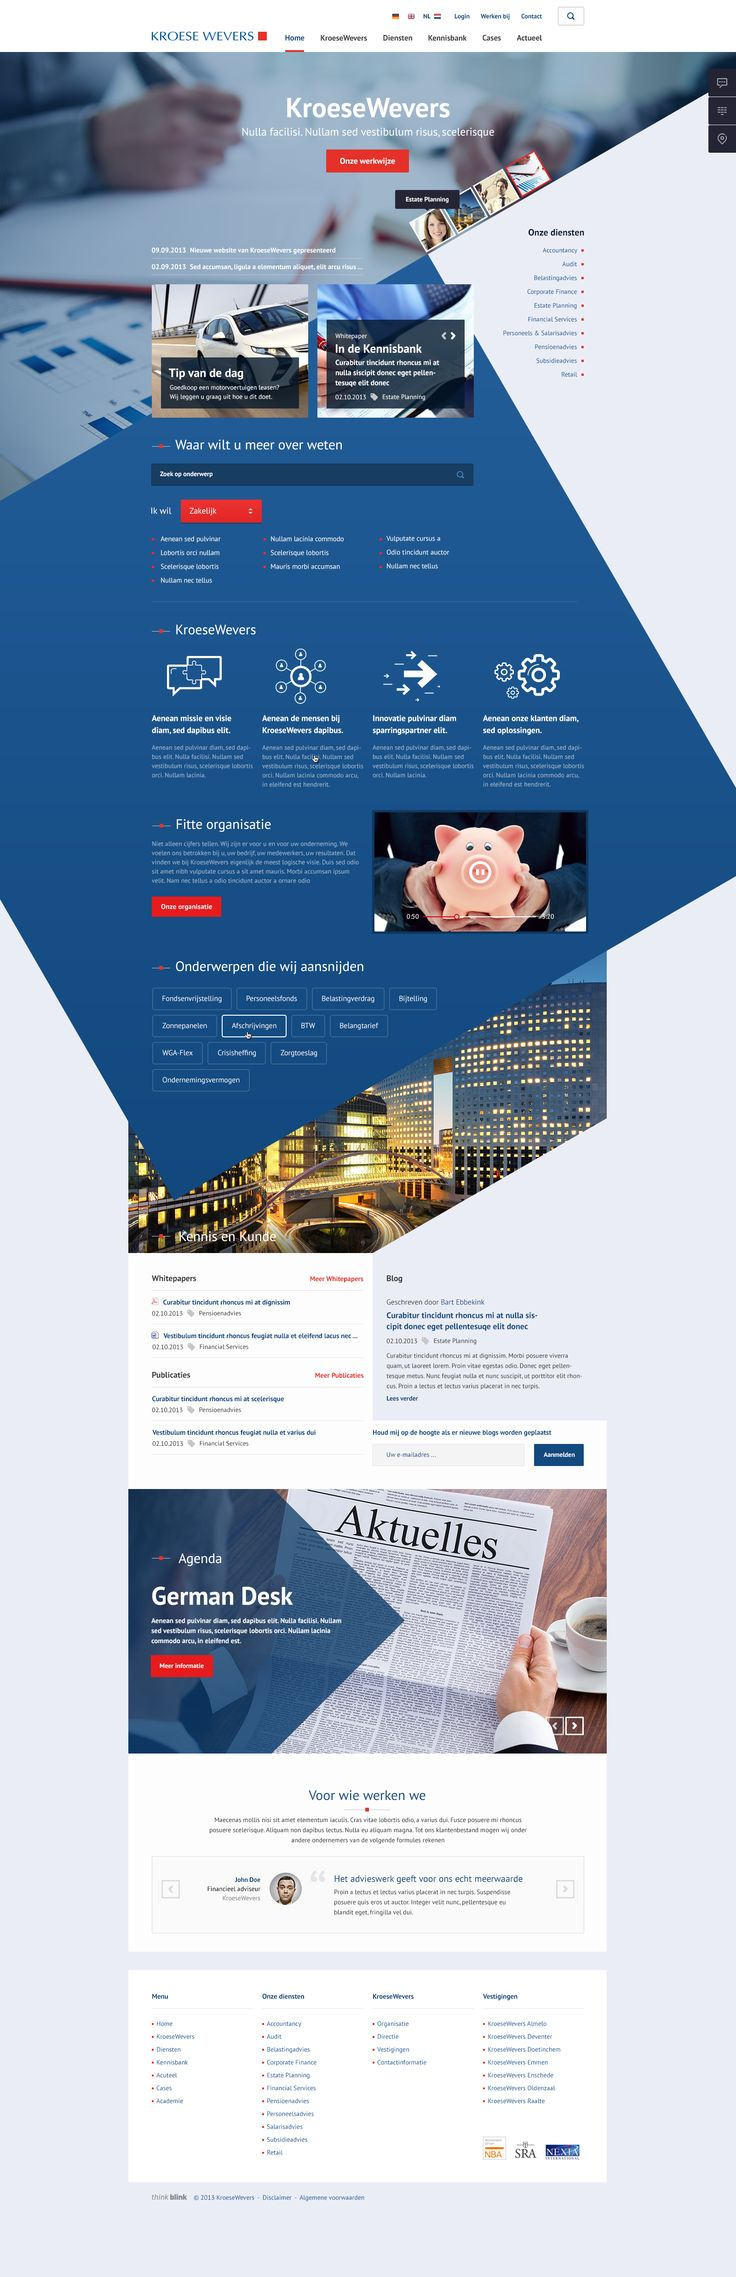 Kroesewever #webdesign